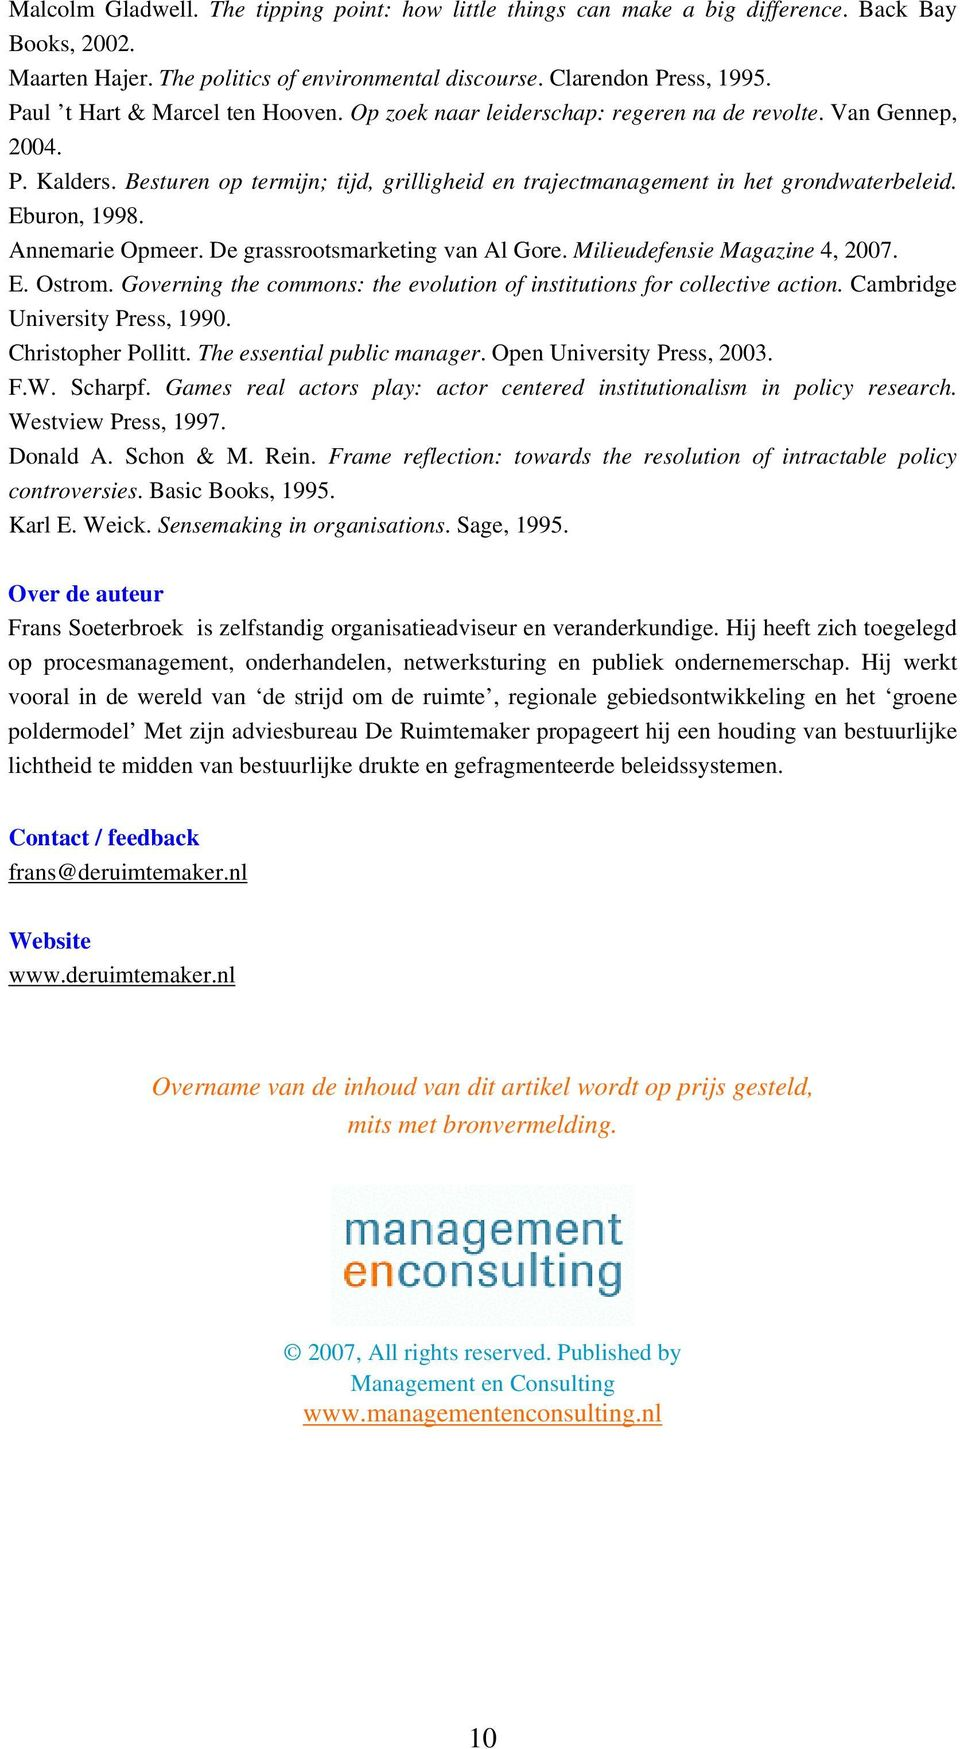 Eburon, 1998. Annemarie Opmeer. De grassrootsmarketing van Al Gore. Milieudefensie Magazine 4, 2007. E. Ostrom. Governing the commons: the evolution of institutions for collective action.